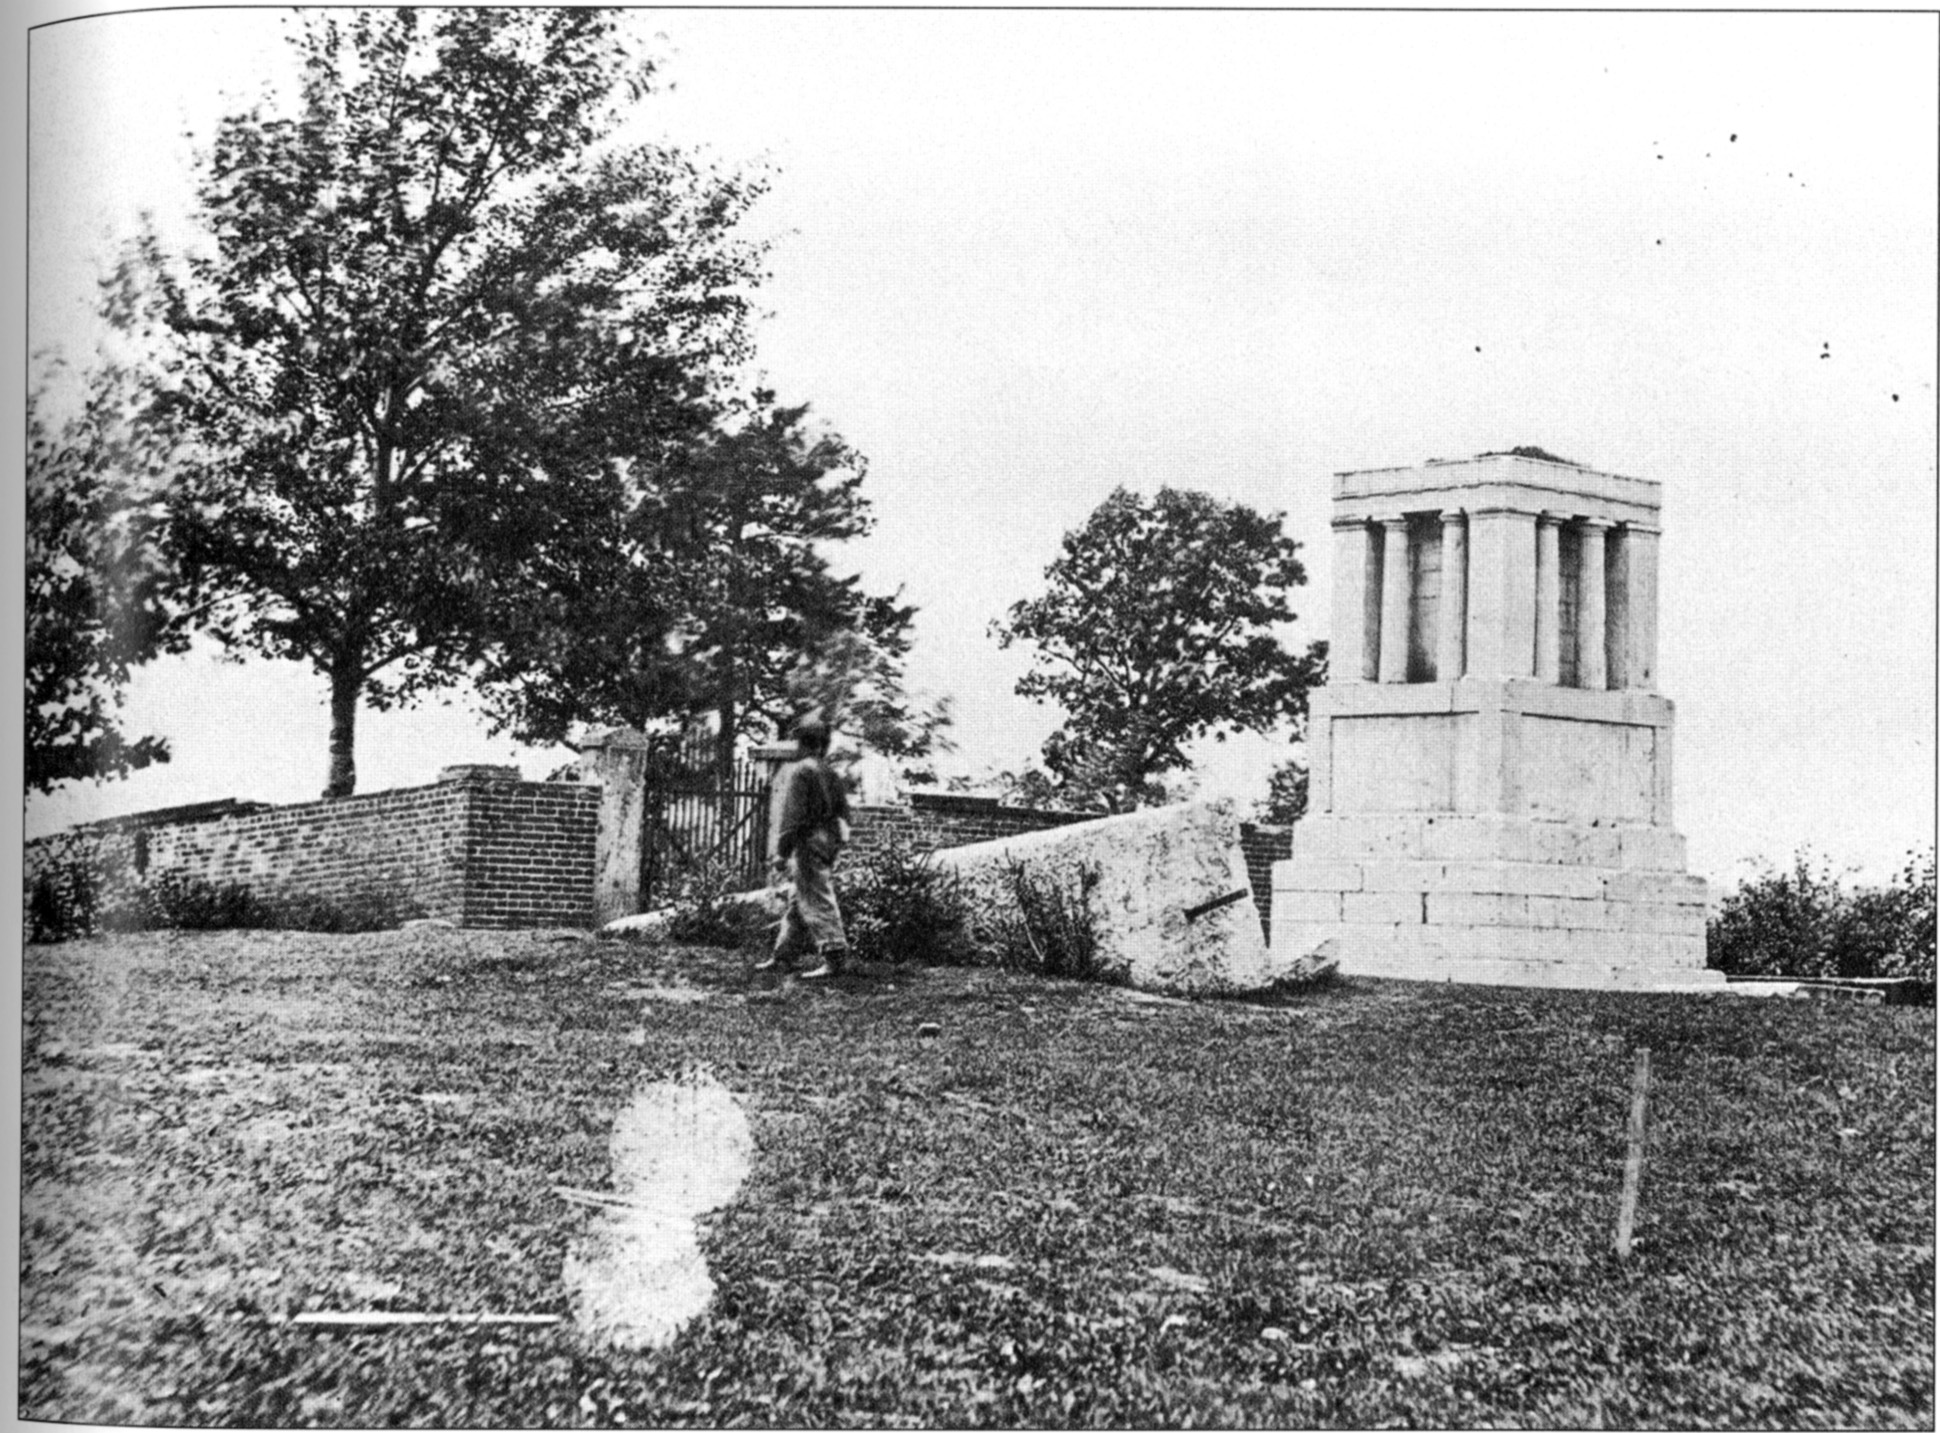 A soldier on guard over the incomplete monument in 1865